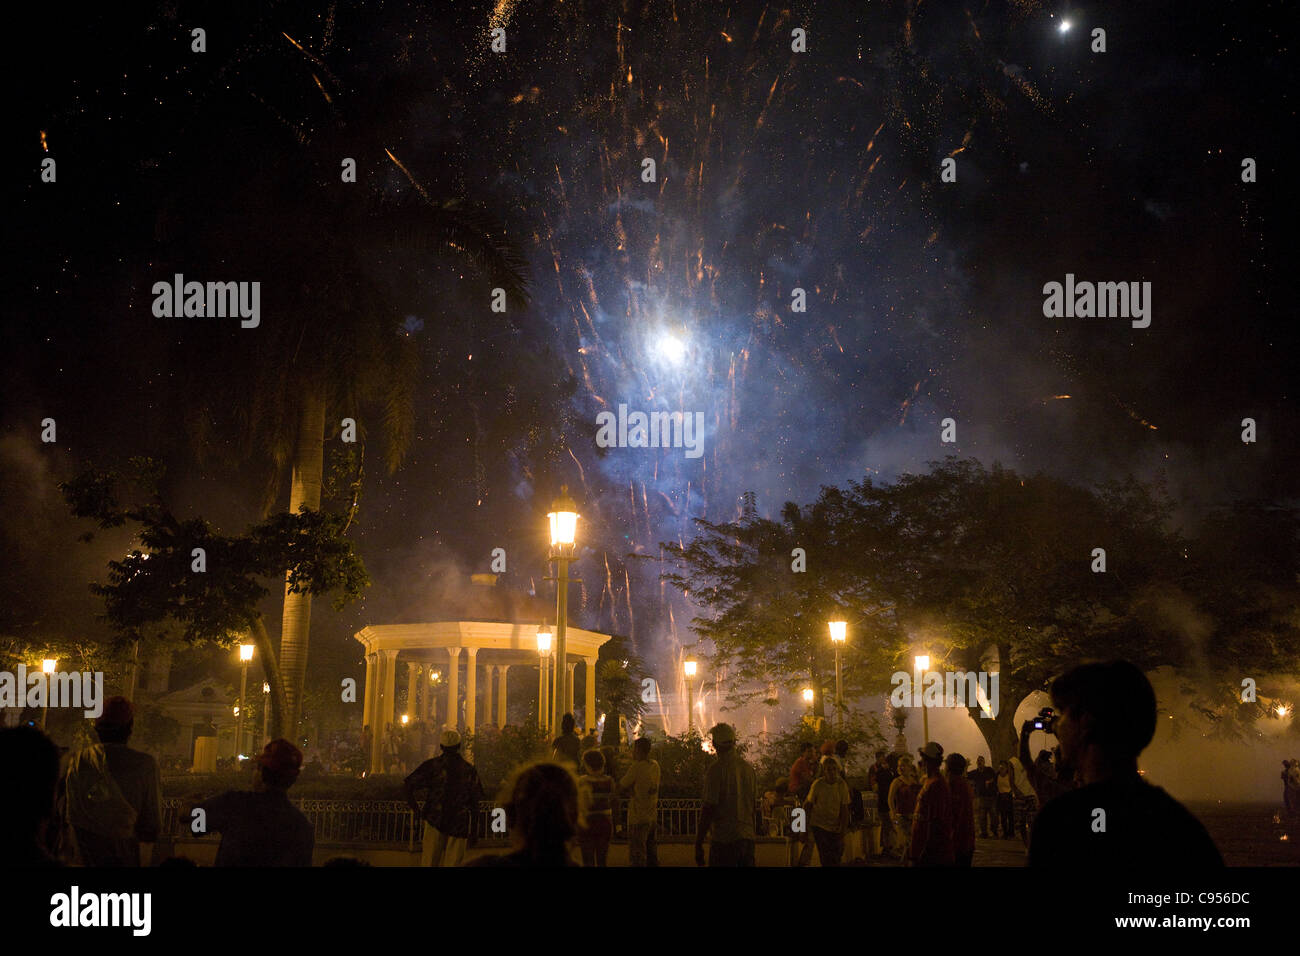 The main square of Remedios is the center of the celebrations which lasts throughout Christmas Eve until daybreak - Stock Image